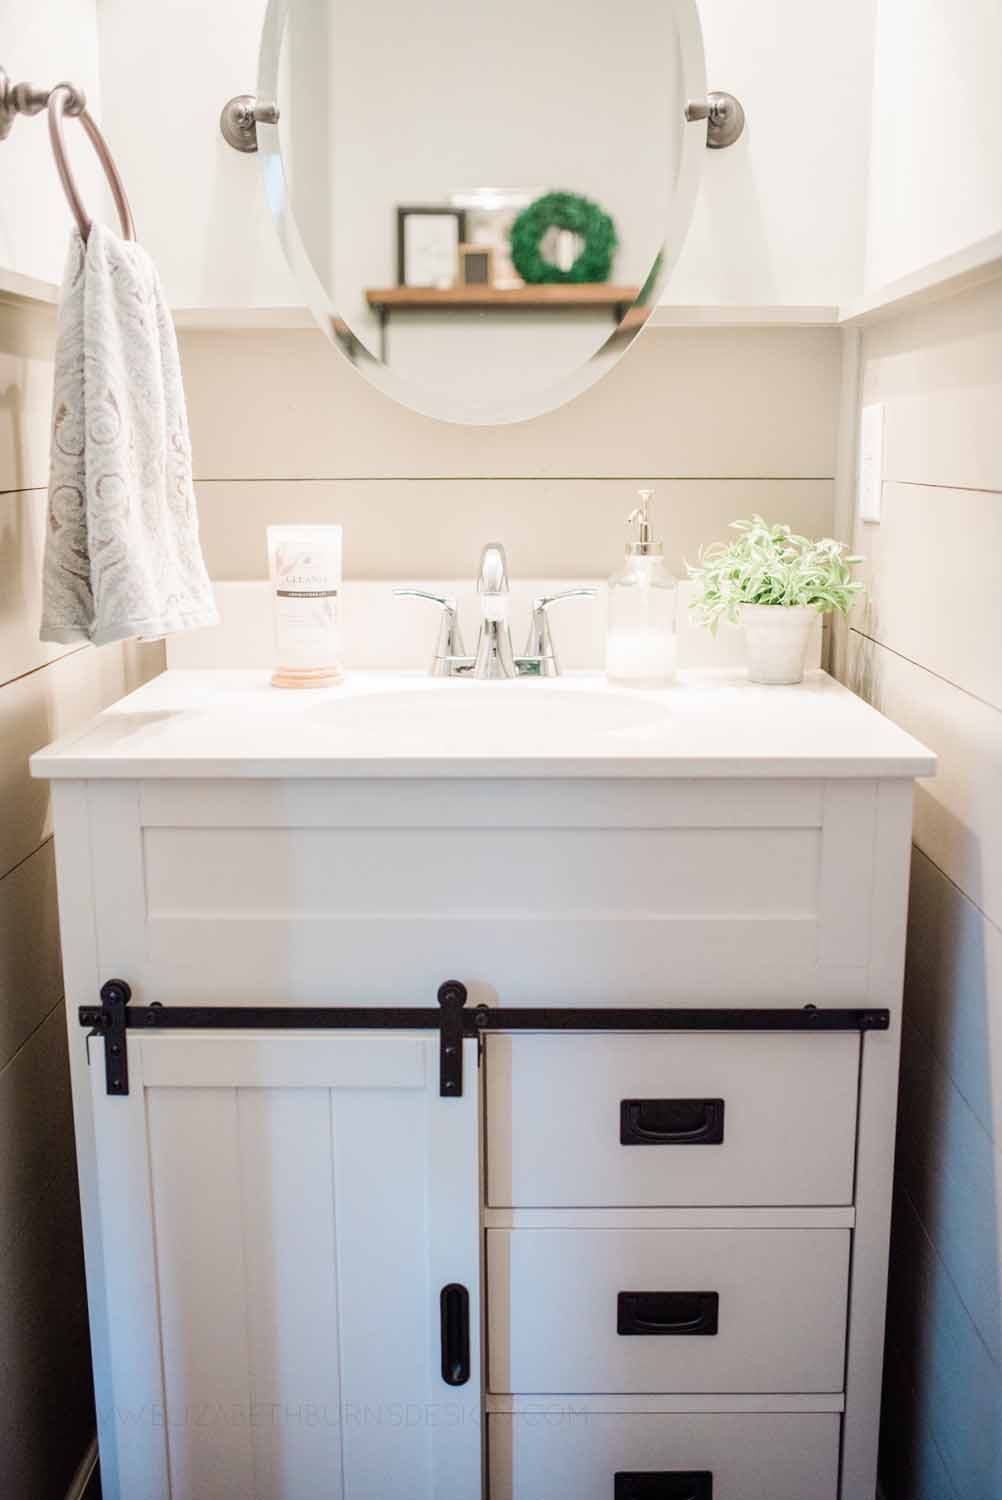 Elizabeth Burns Design Raleigh Interior Designer 1990s house remodel before and after Sherwin Williams Silver Strand SW 7057 Farmhouse Powder Room Dorian Gray Shiplap (2).jpg